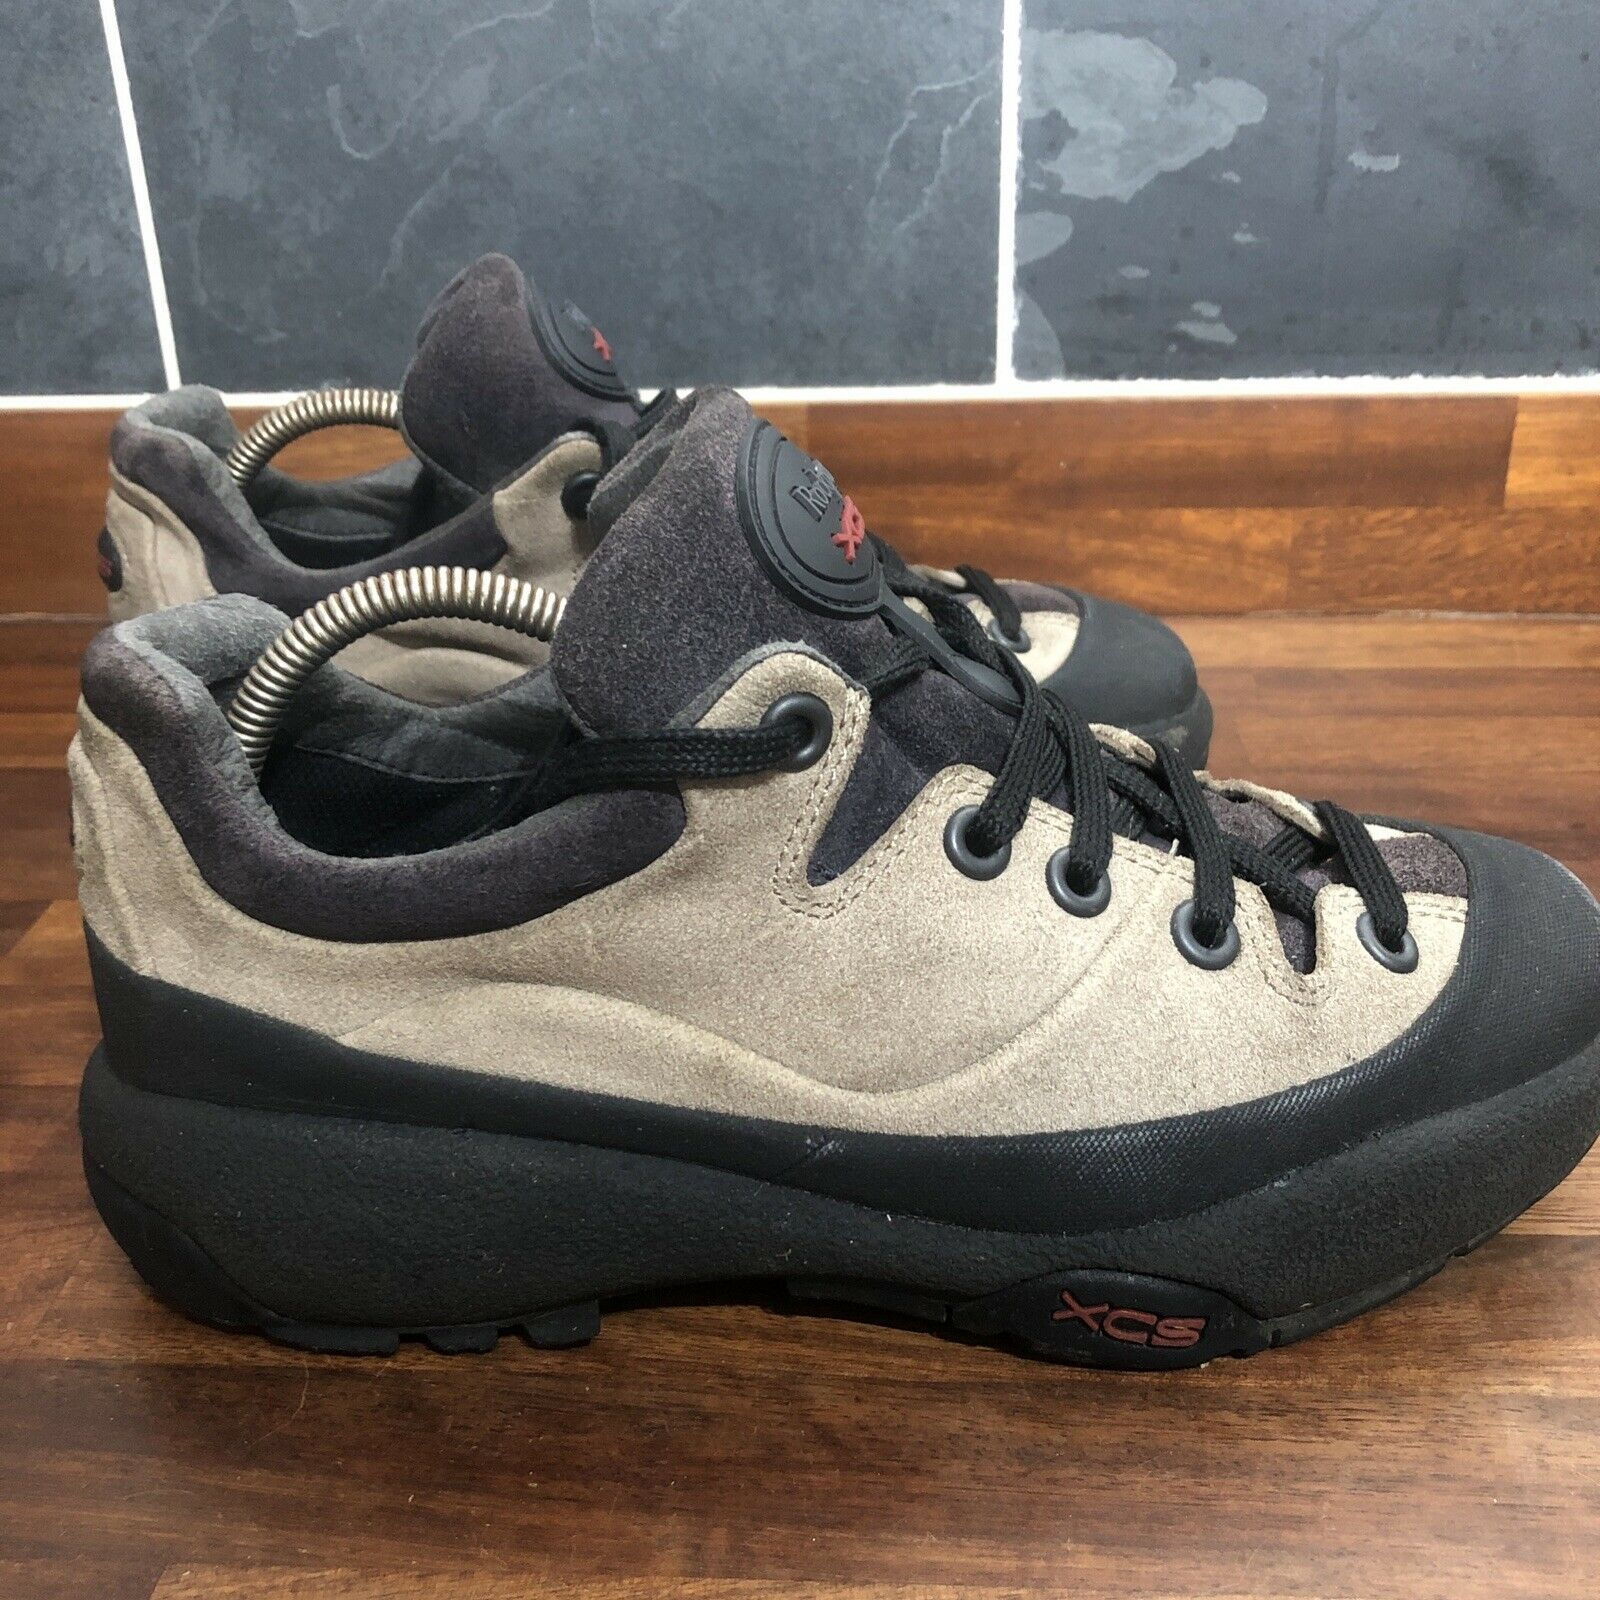 Rockport XCS extreme condition sport Size 9 Walking Camping Trail Mountaineer